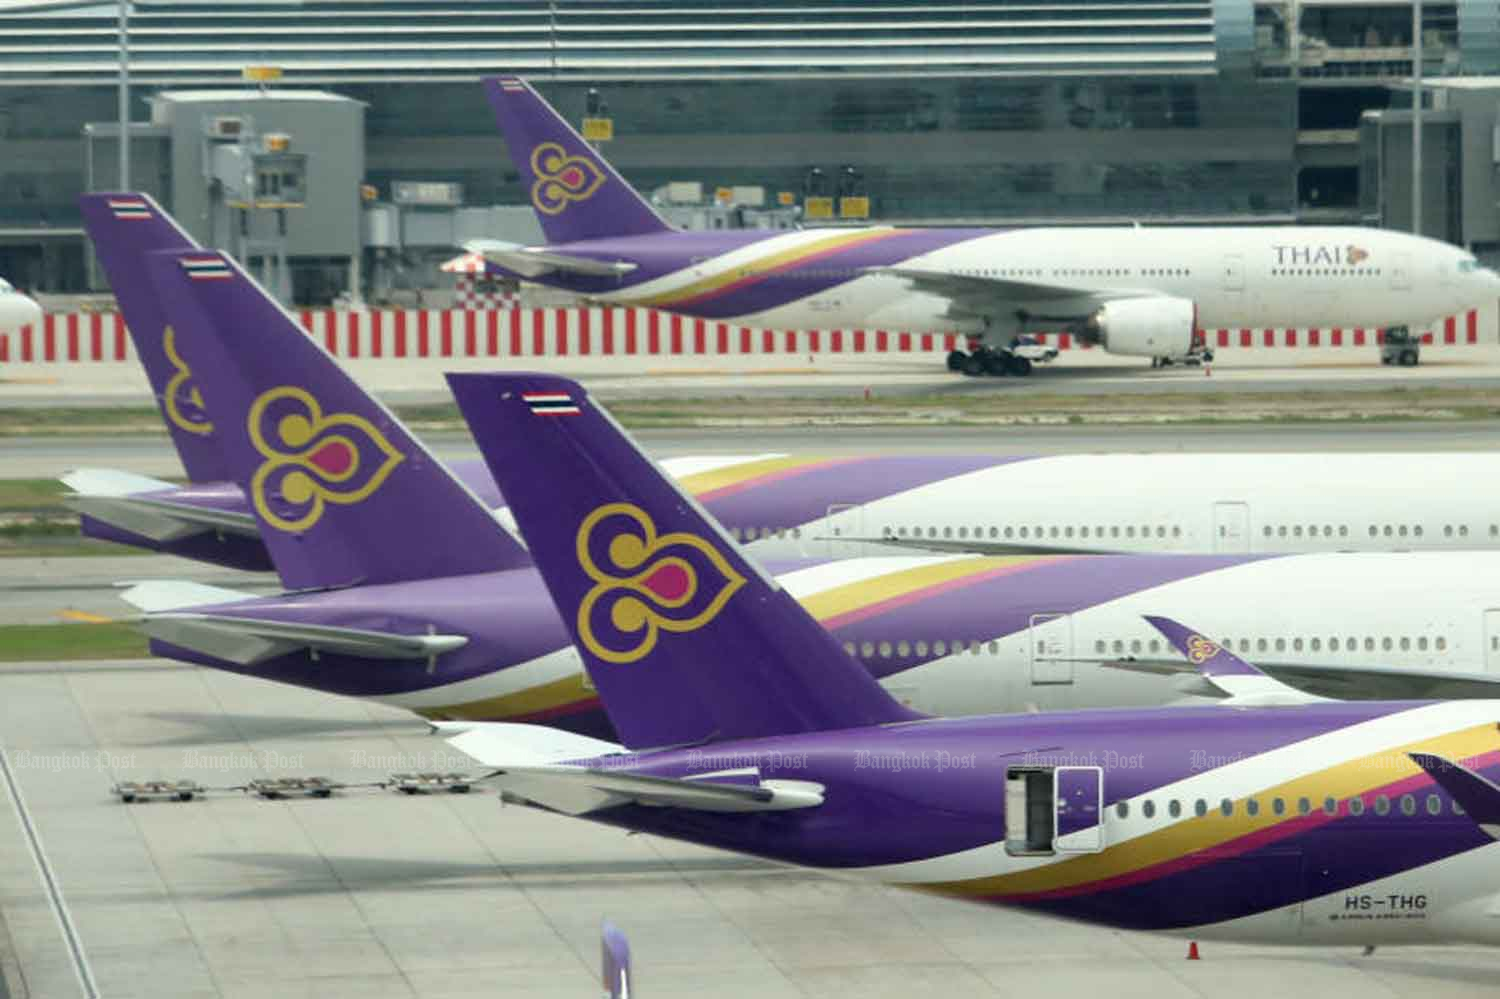 Thai Airways International Plc (THAI) planes sit idle at Suvarnabhumi airport during the Covid-19 pandemic. The loss-ridden national carrier's financial woes have worsened because of the coronavirus crisis. (Photo by Wichan Charoenkiatpakul)